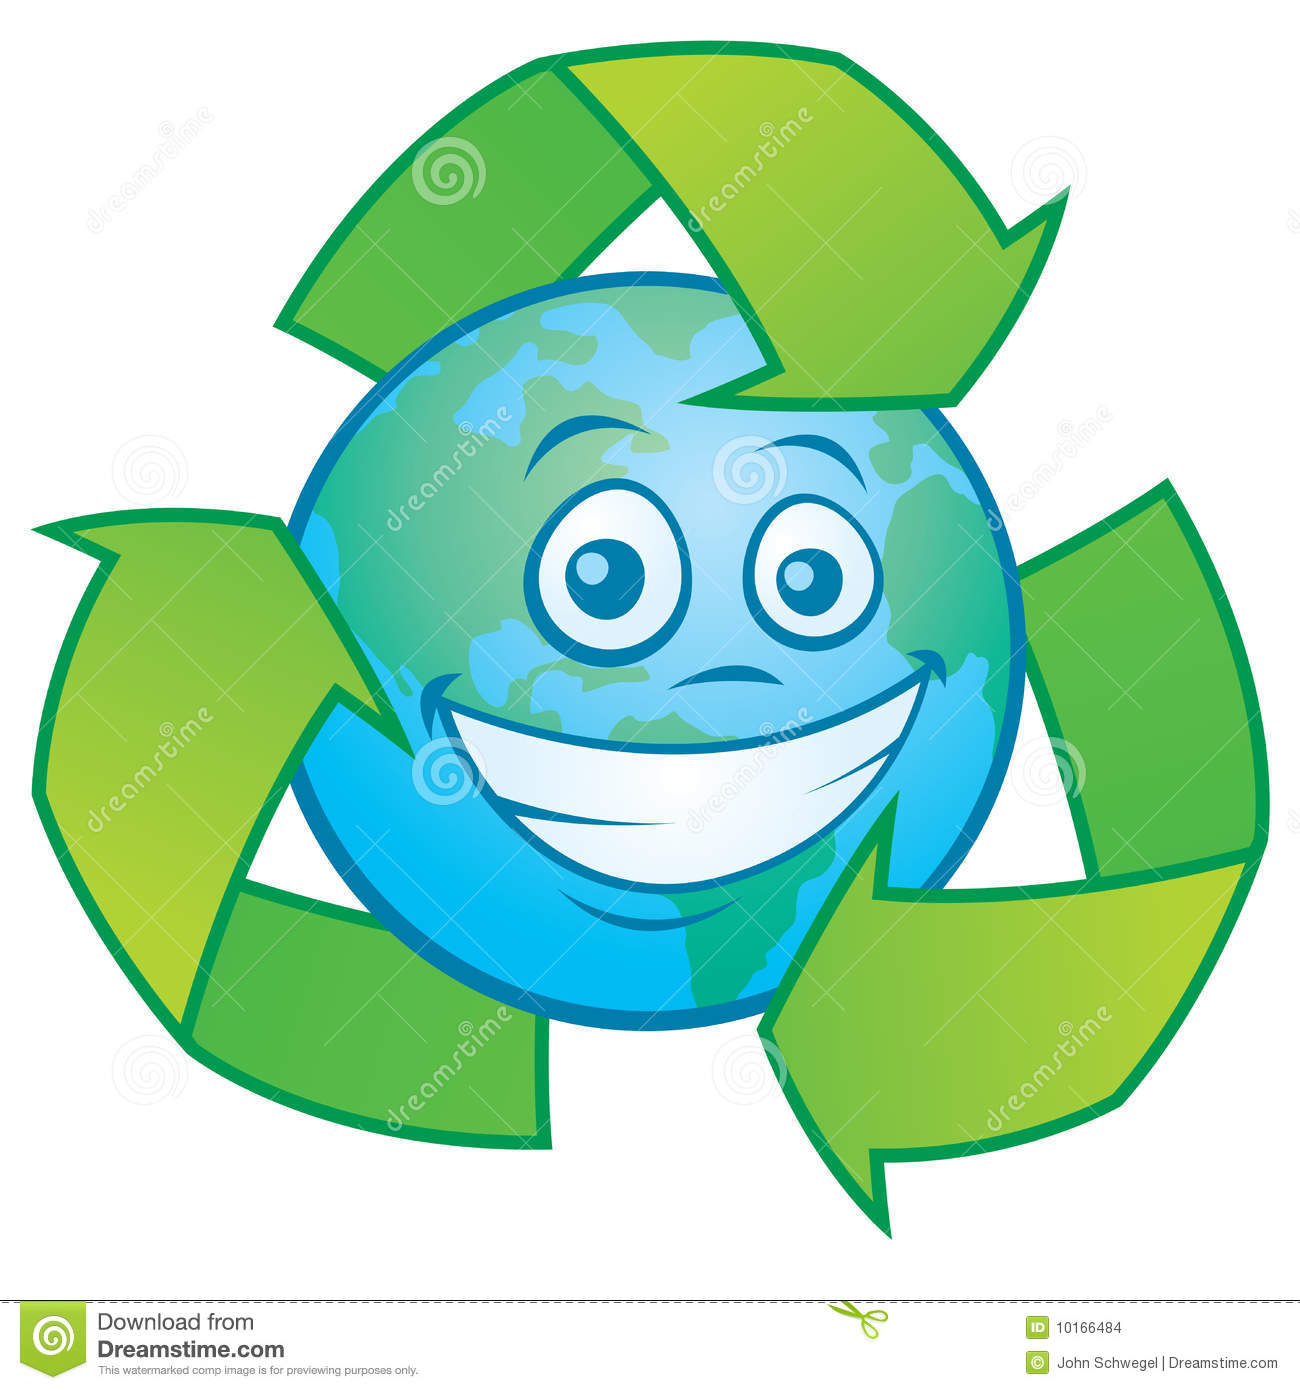 Earth cartoon with recycle symbol stock vector illustration of earth cartoon with recycle symbol biocorpaavc Gallery